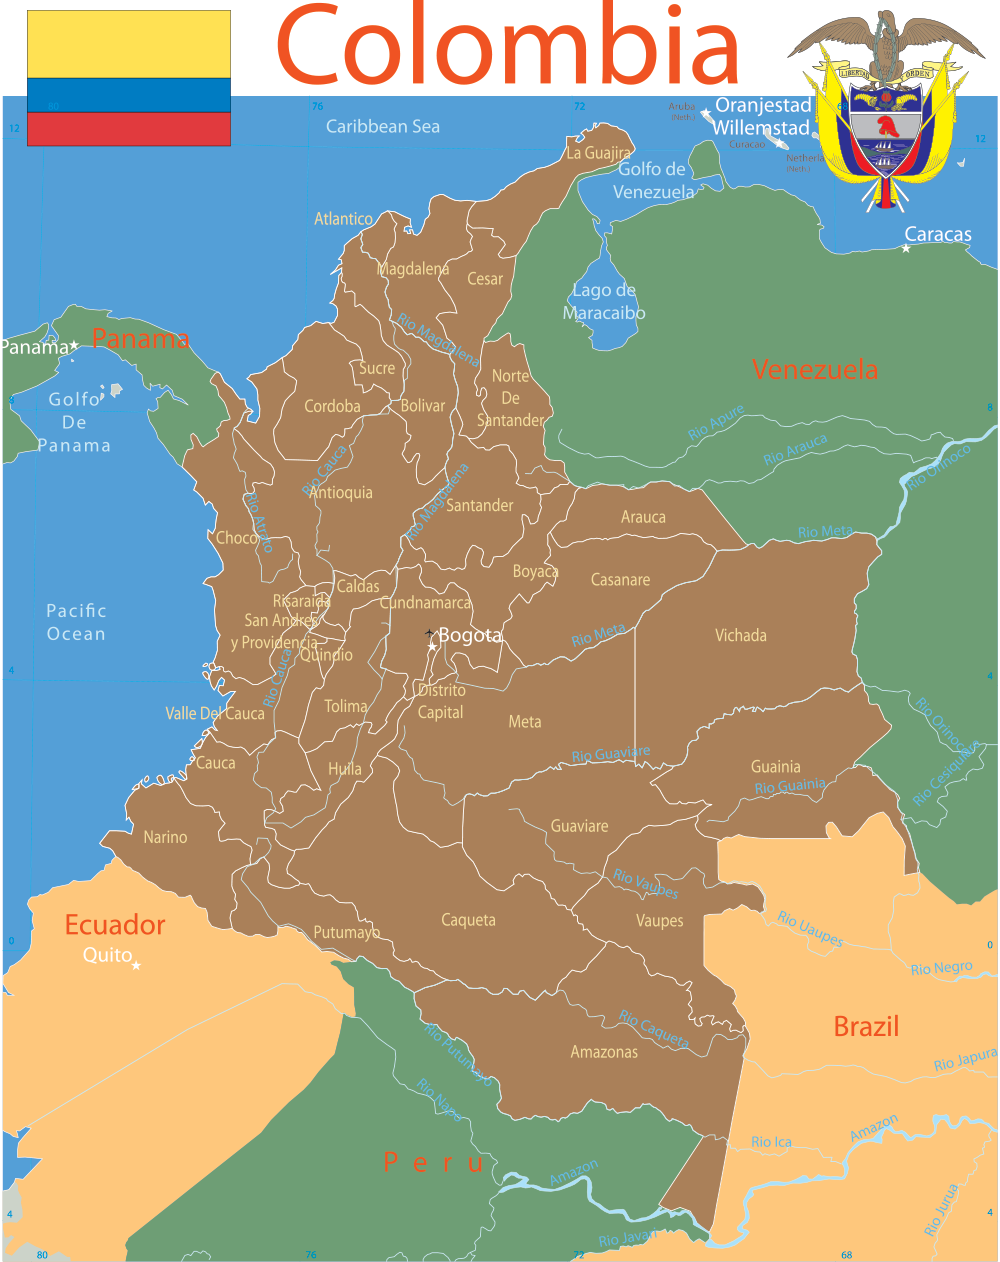 Colombia Map With Cities Colombia Map with cities   blank outline map of Colombia